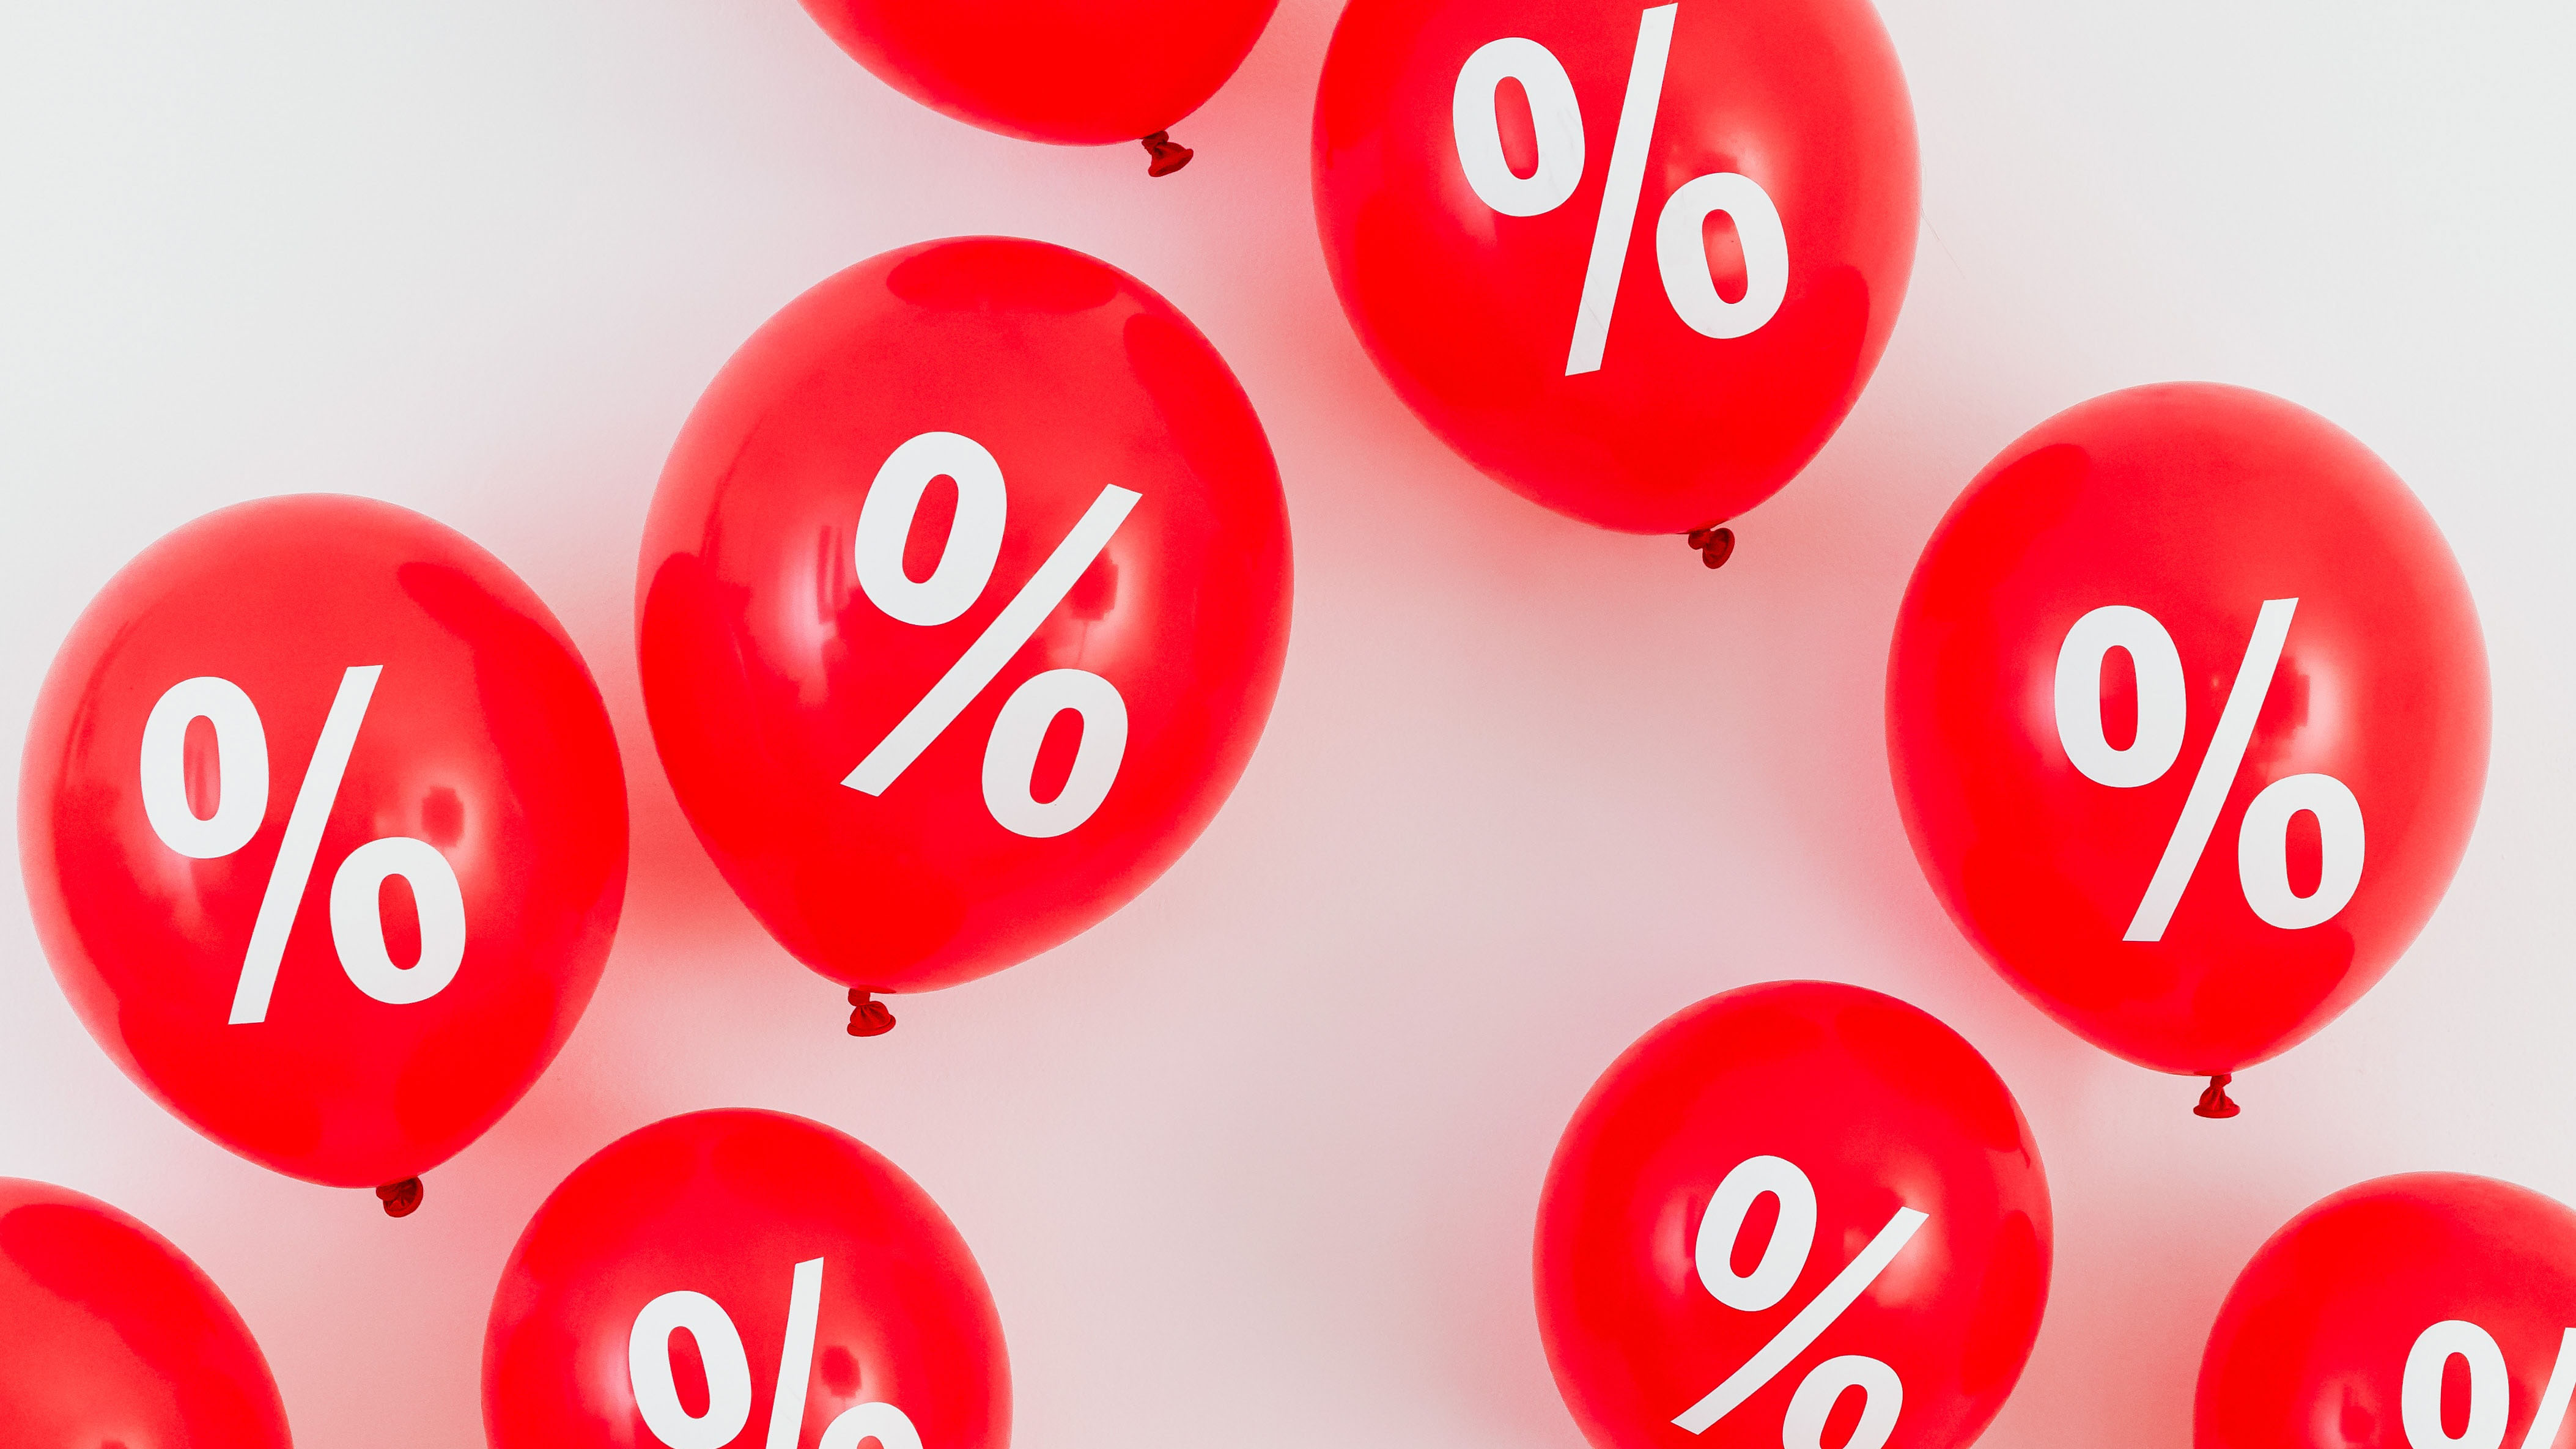 Reb balloons with percentage signs.